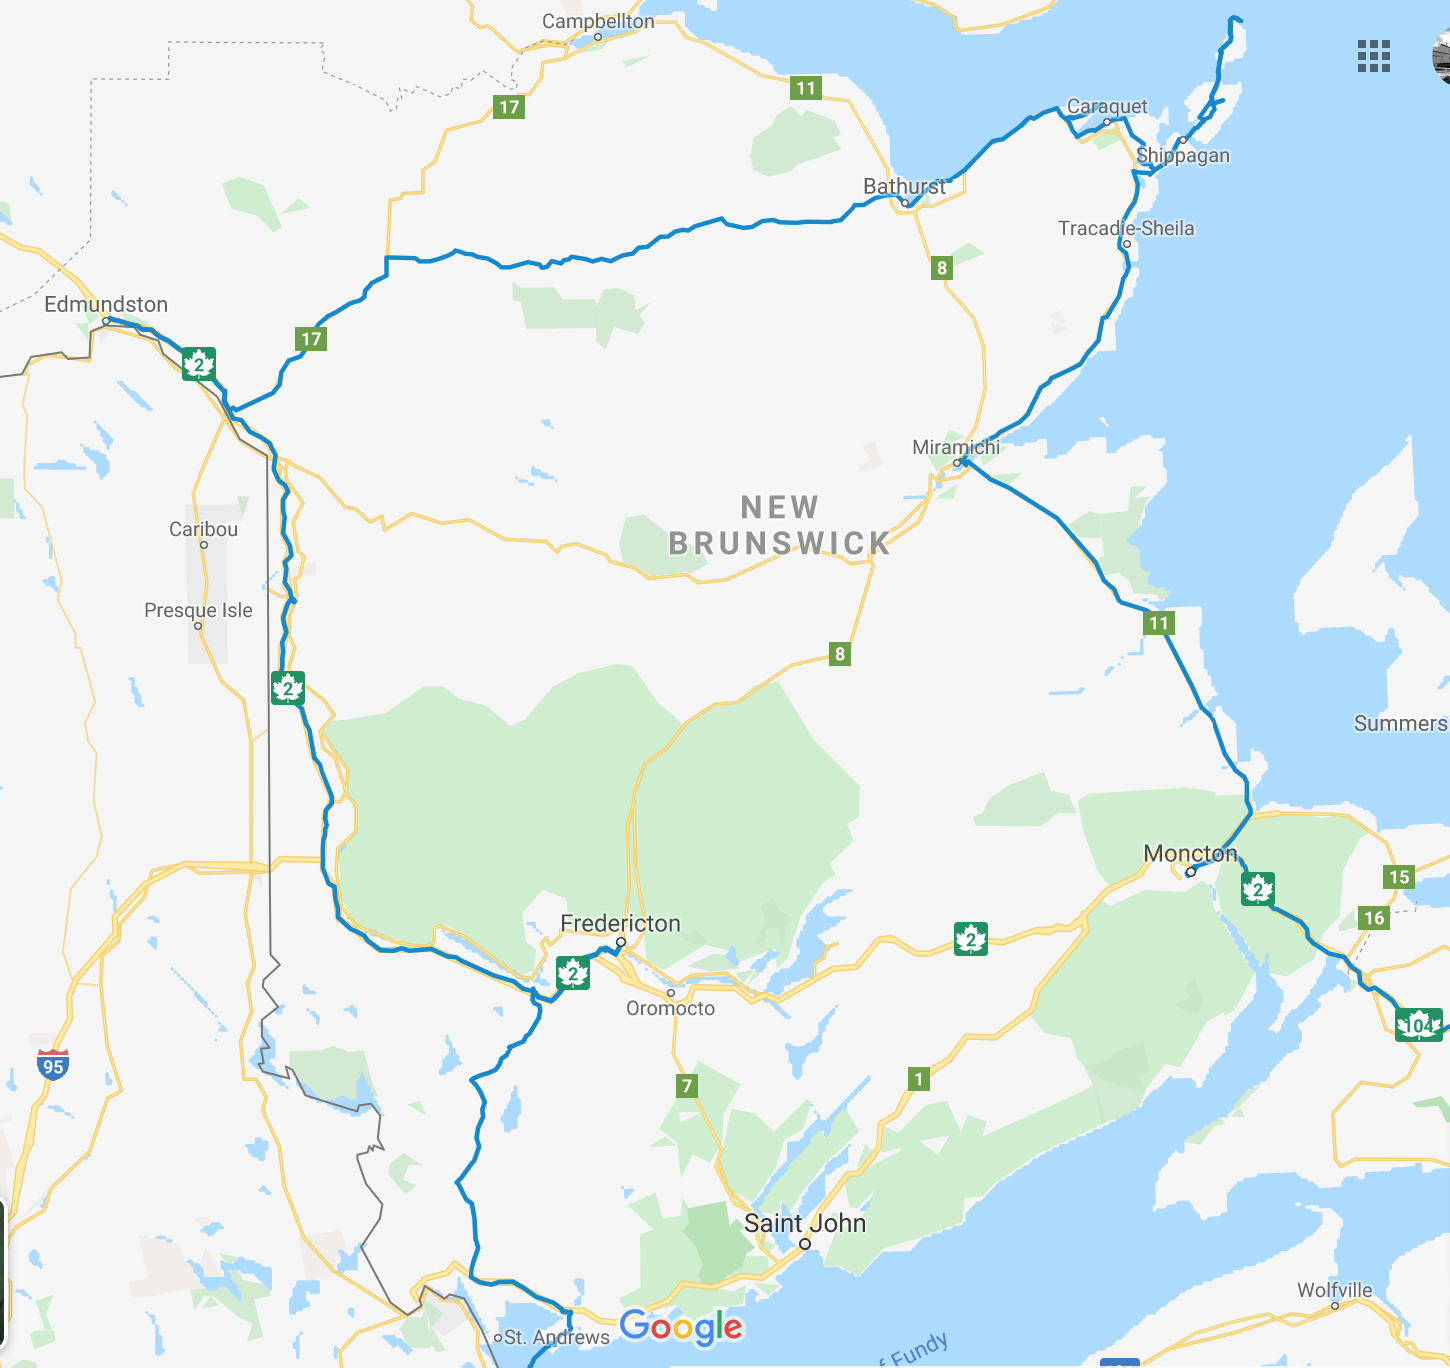 Travel routes in New Brunswick